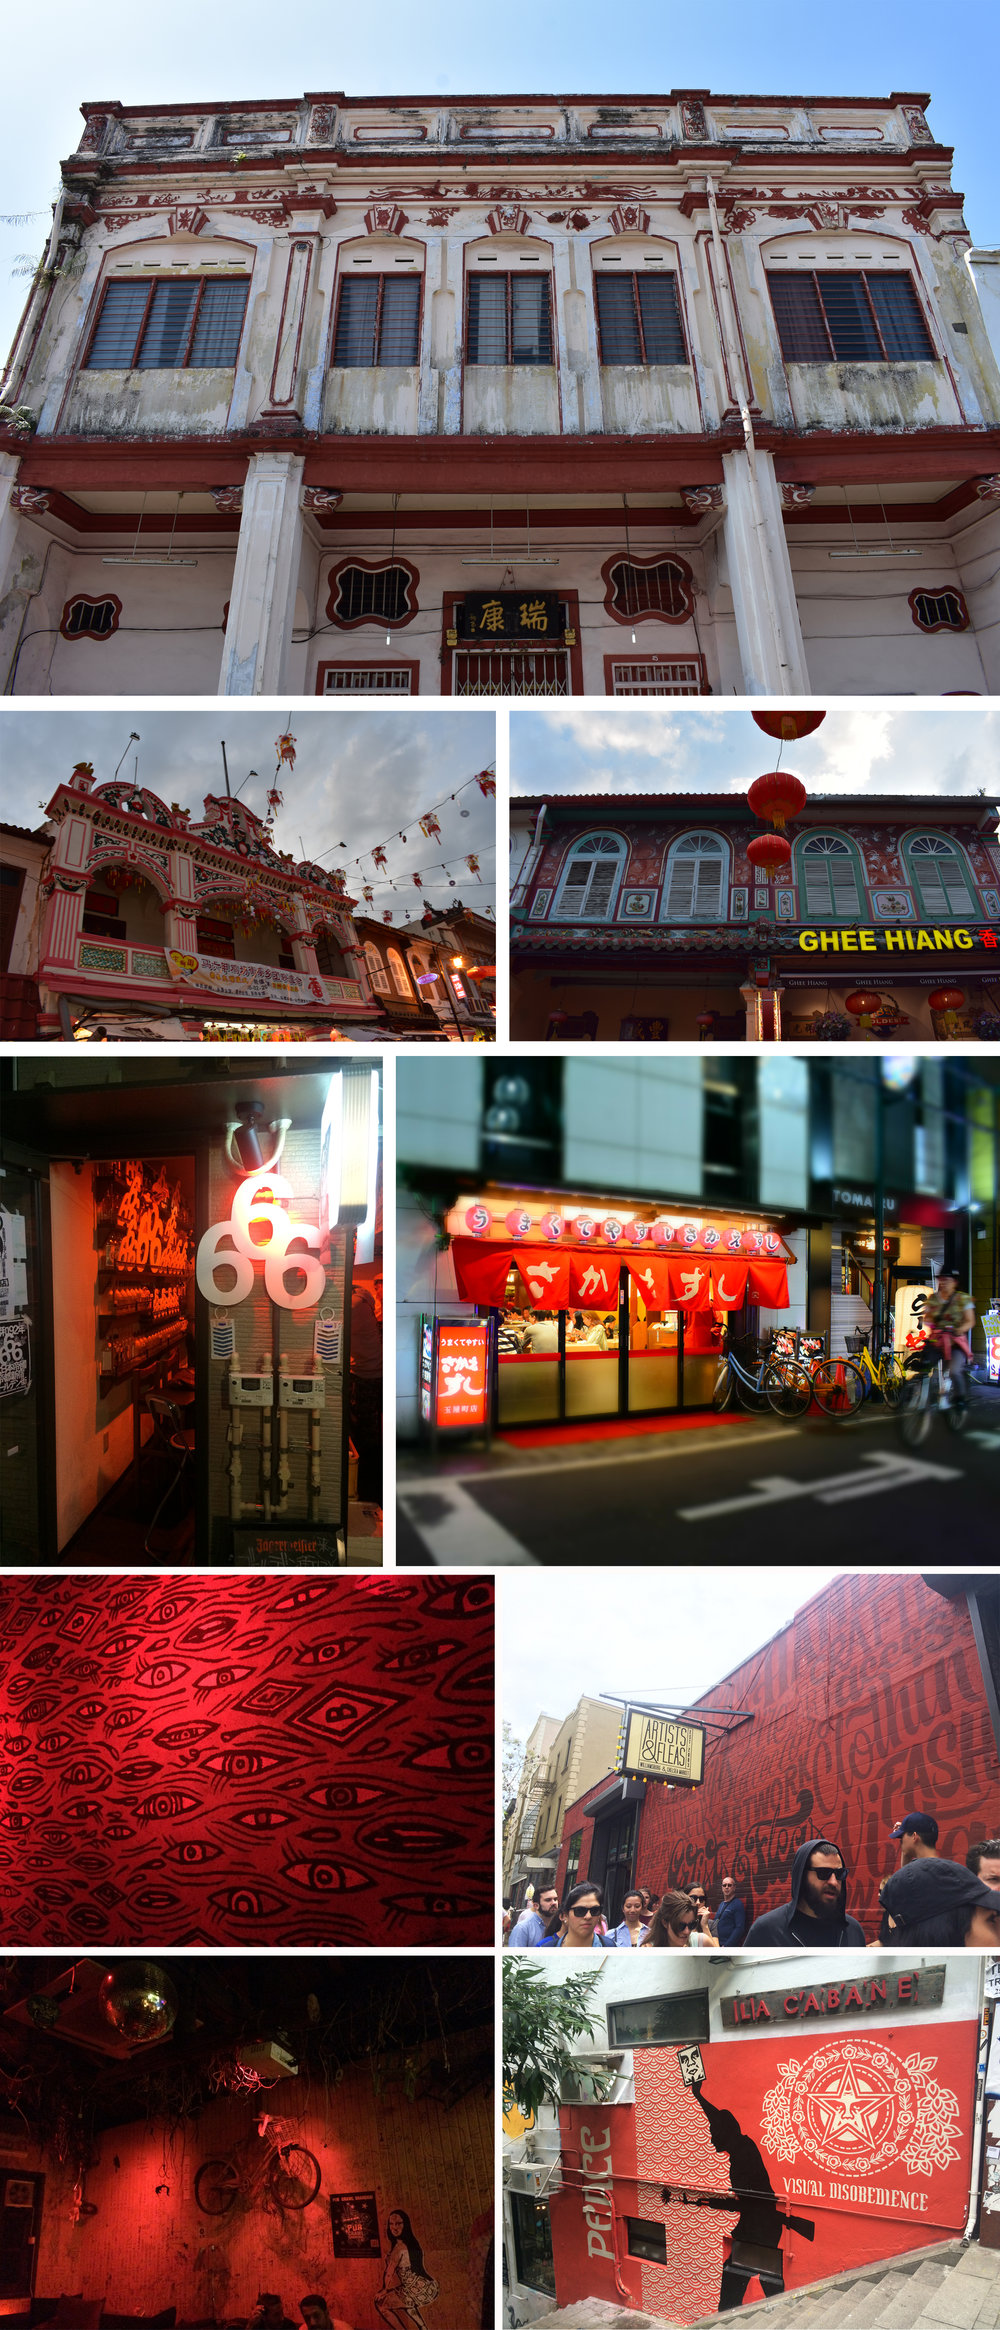 All photography is mine from travels in Malaysia, Bali, Hong Kong, Shanghai, Tokyo & New York.